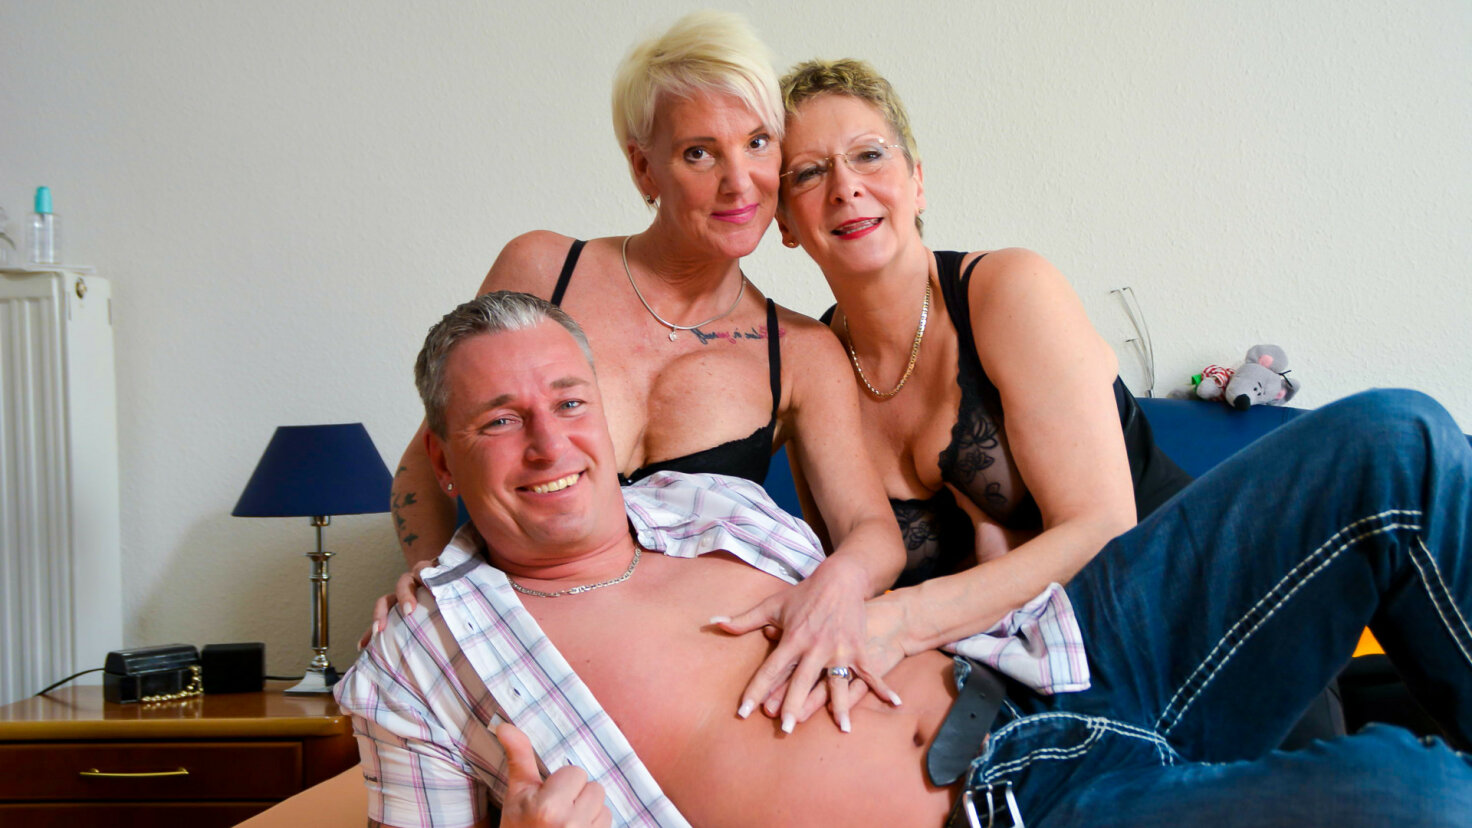 Crazy hot German foursome with horny blonde amateur grannies